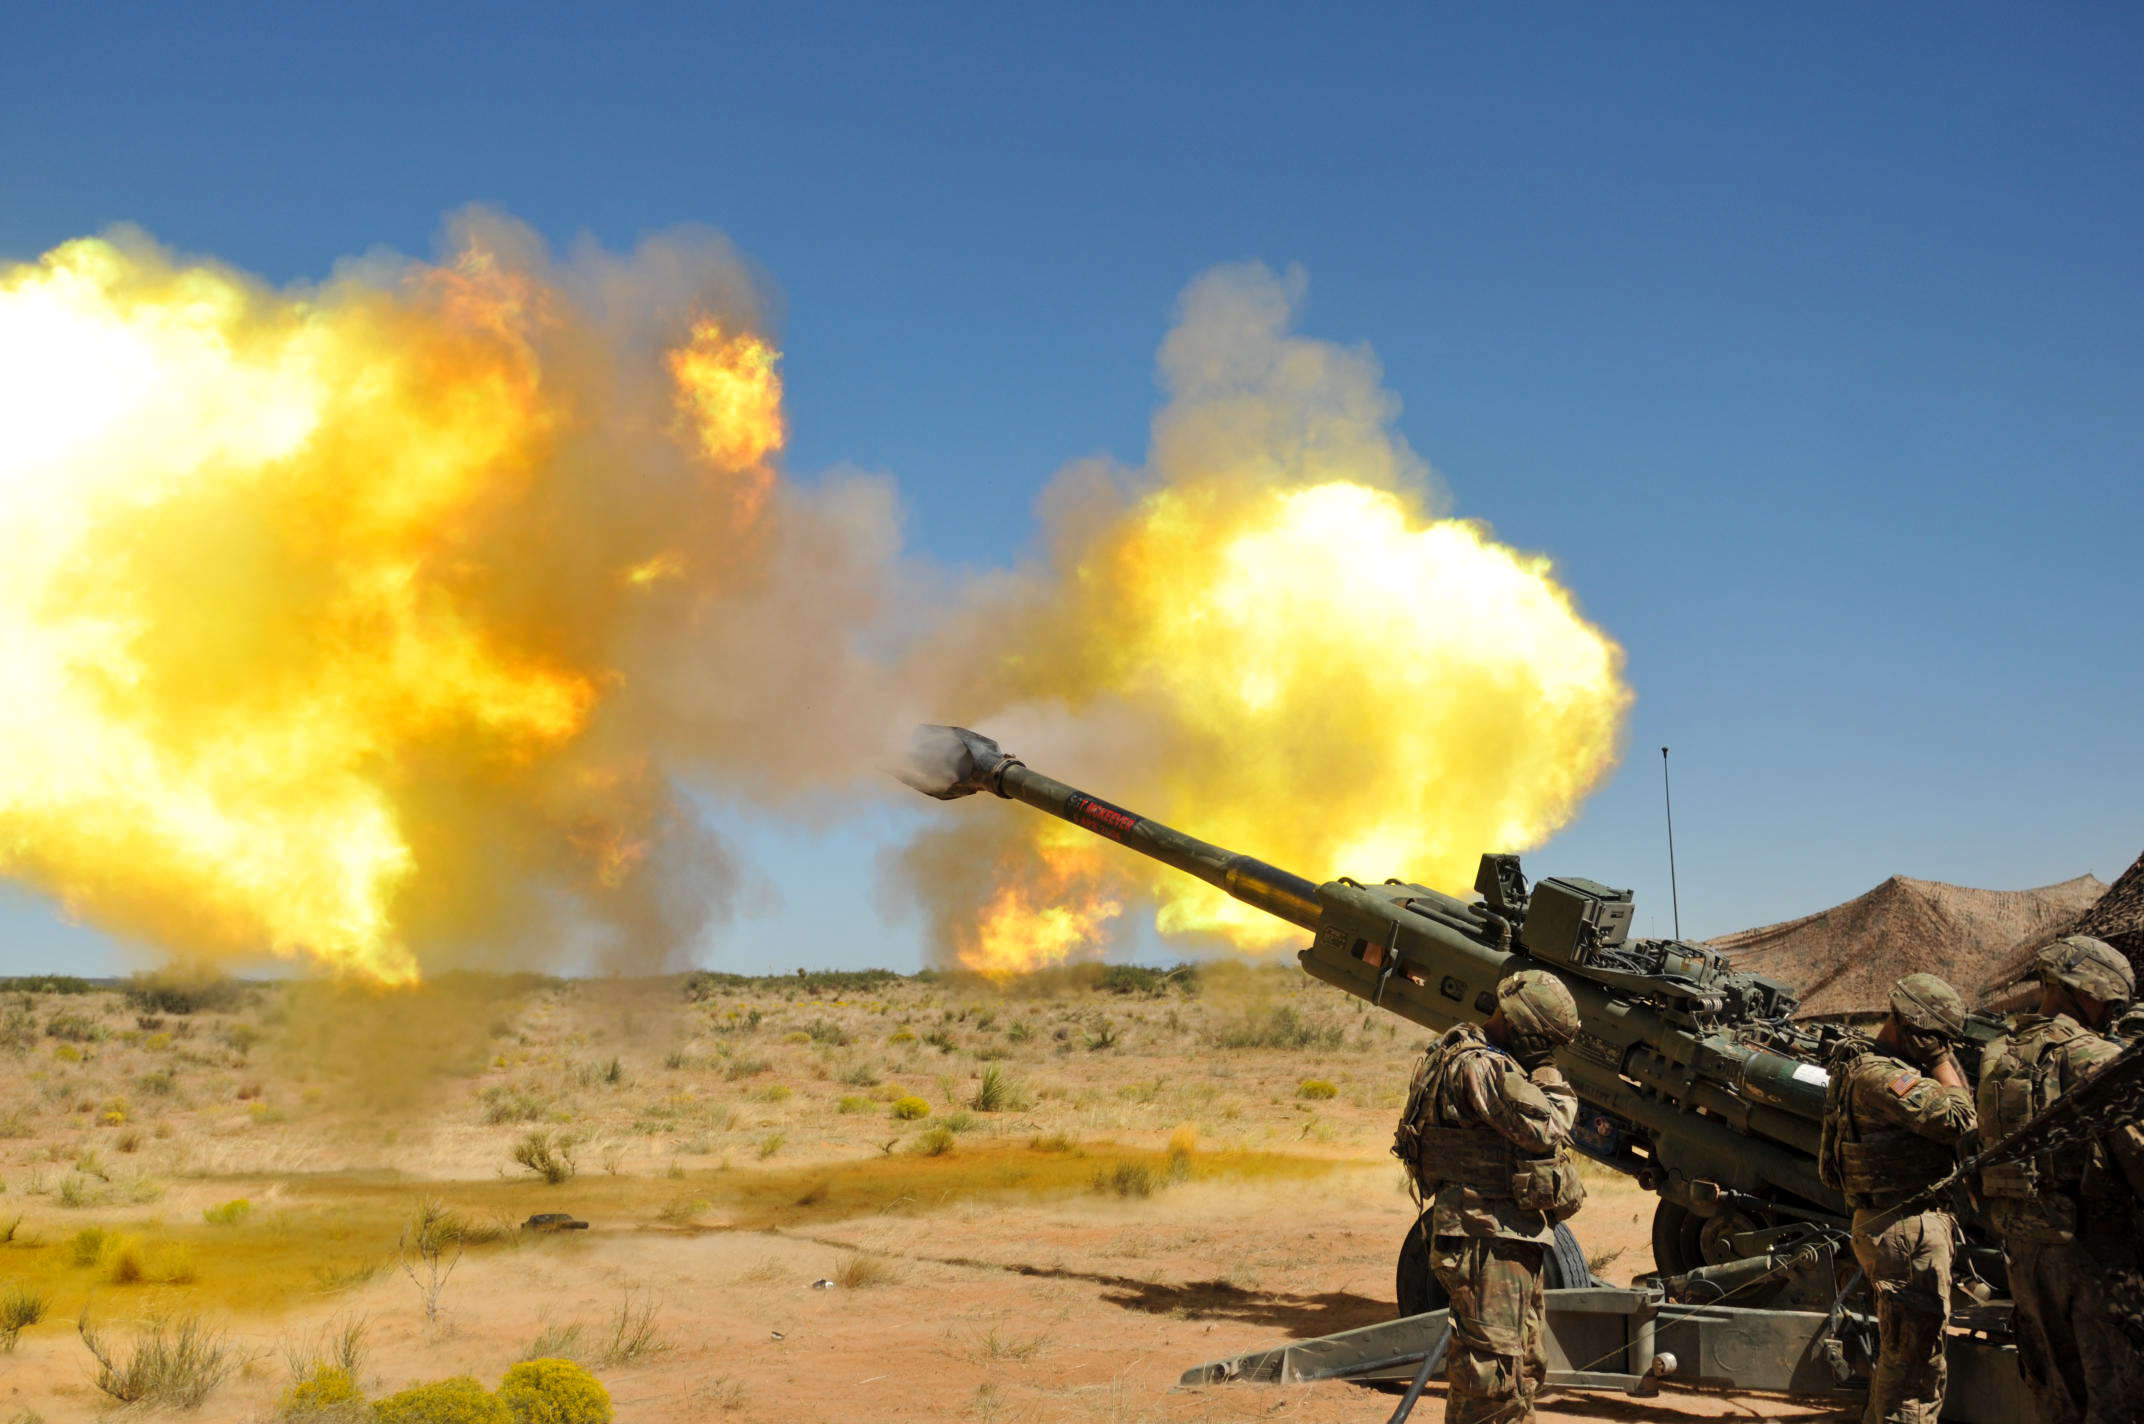 M777 Howitzer Artillery, Artillery, Cannon, Fire, Firepower, HQ Photo